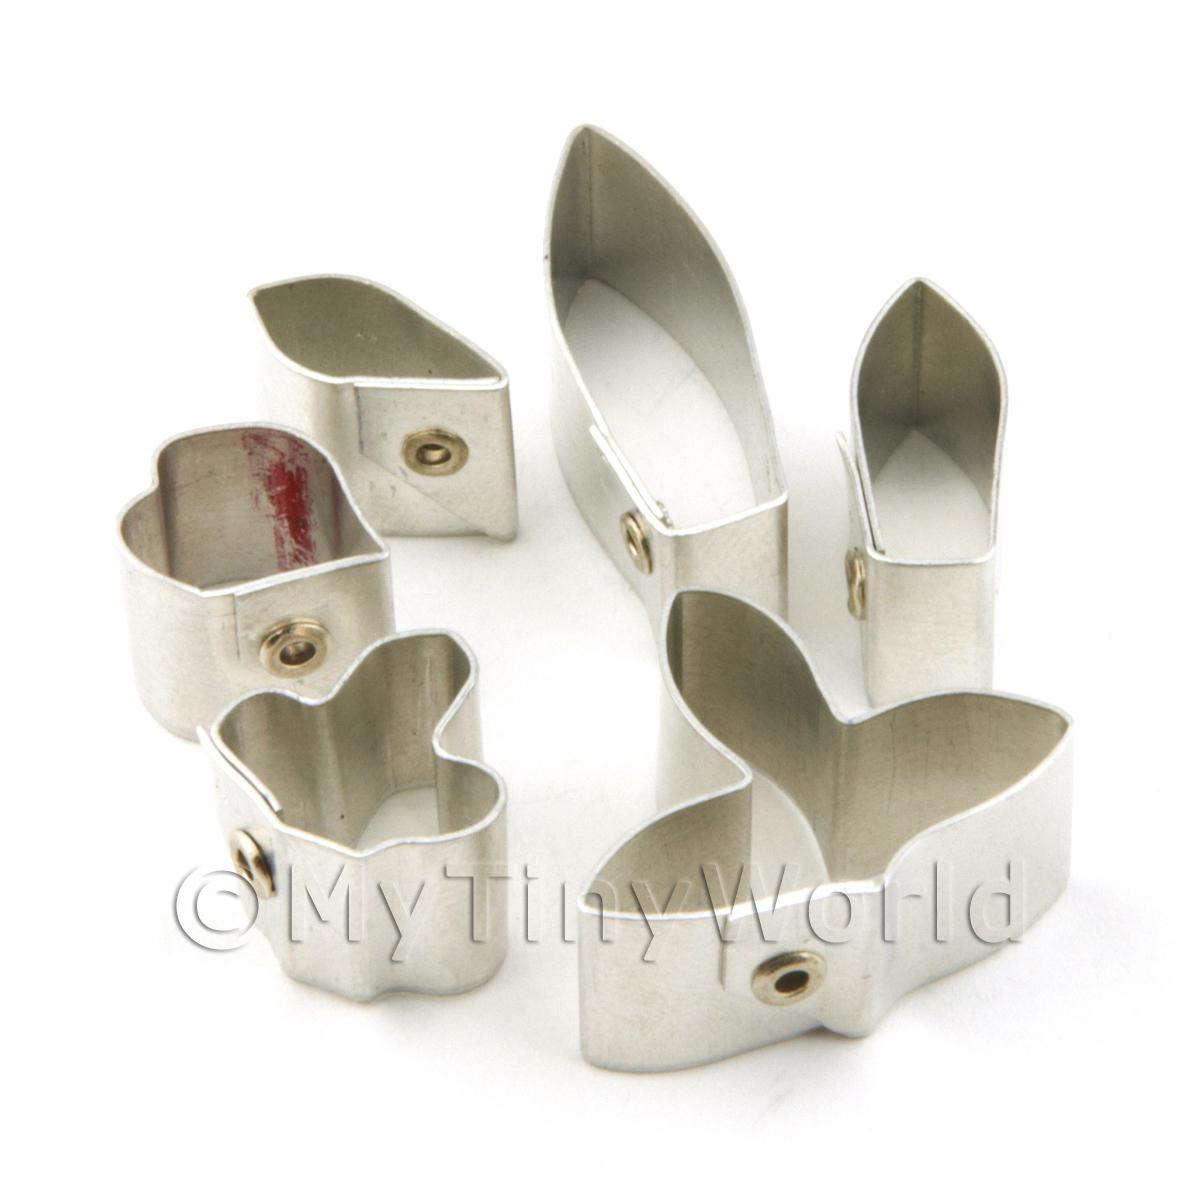 Set of 6 Metal Dendrobium Hybrid Orchid Craft Cutters